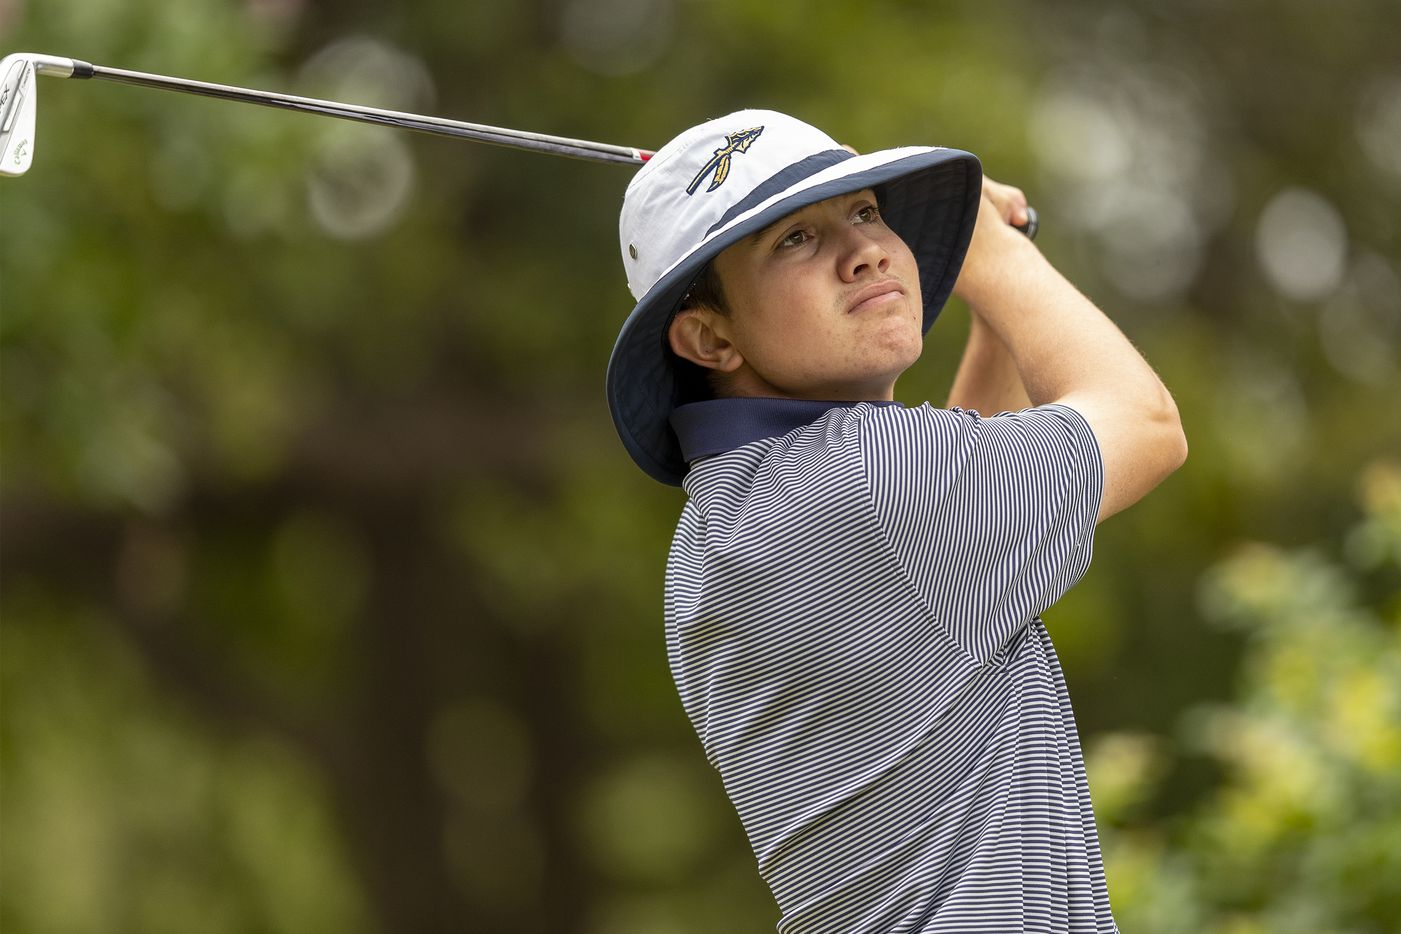 KellerÕs Kaelen Dulany hits on the 1st tee box during the final round of the UIL Class 6A boys golf tournament in Georgetown, Tuesday, May 18, 2021. (Stephen Spillman/Special Contributor)